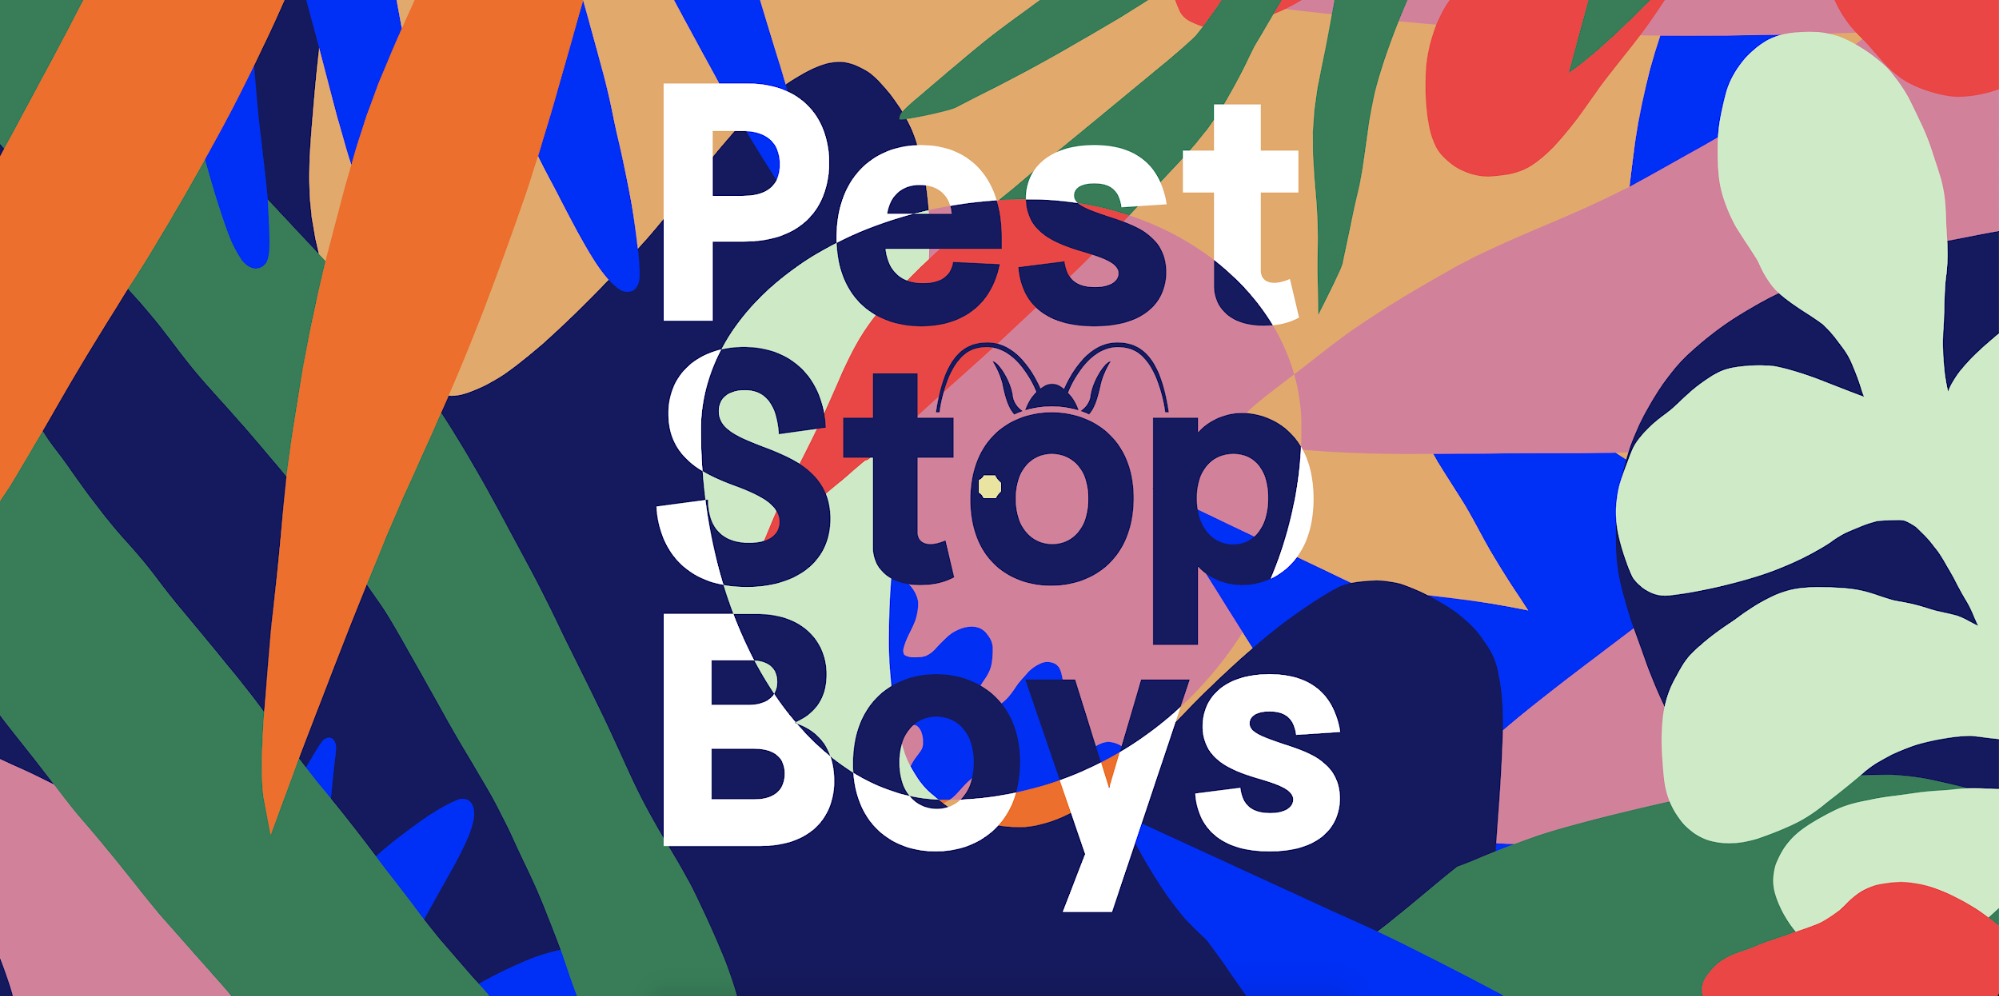 Combination of bright colors by Pest Stop Boys